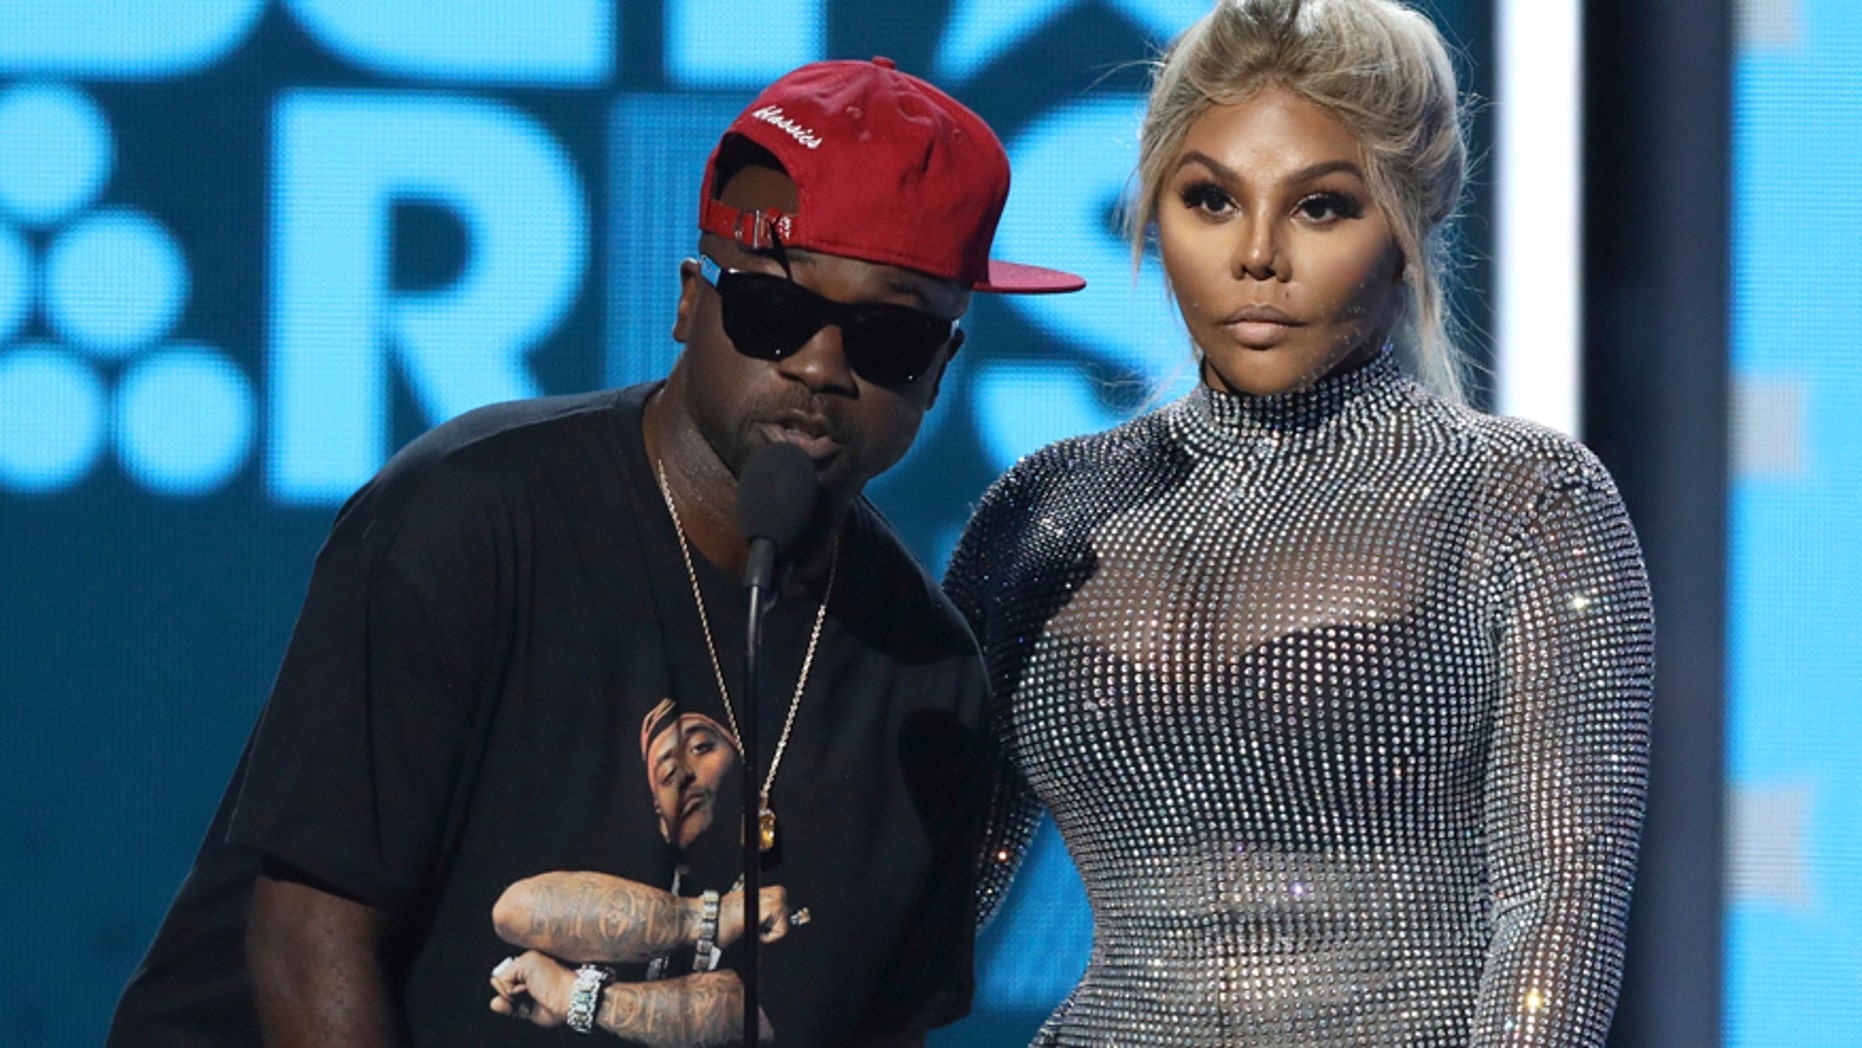 Havoc, left, and Lil Kim present the award for best male hip hop artist at the BET Awards at the Microsoft Theater on Sunday, June 25, 2017, in Los Angeles.